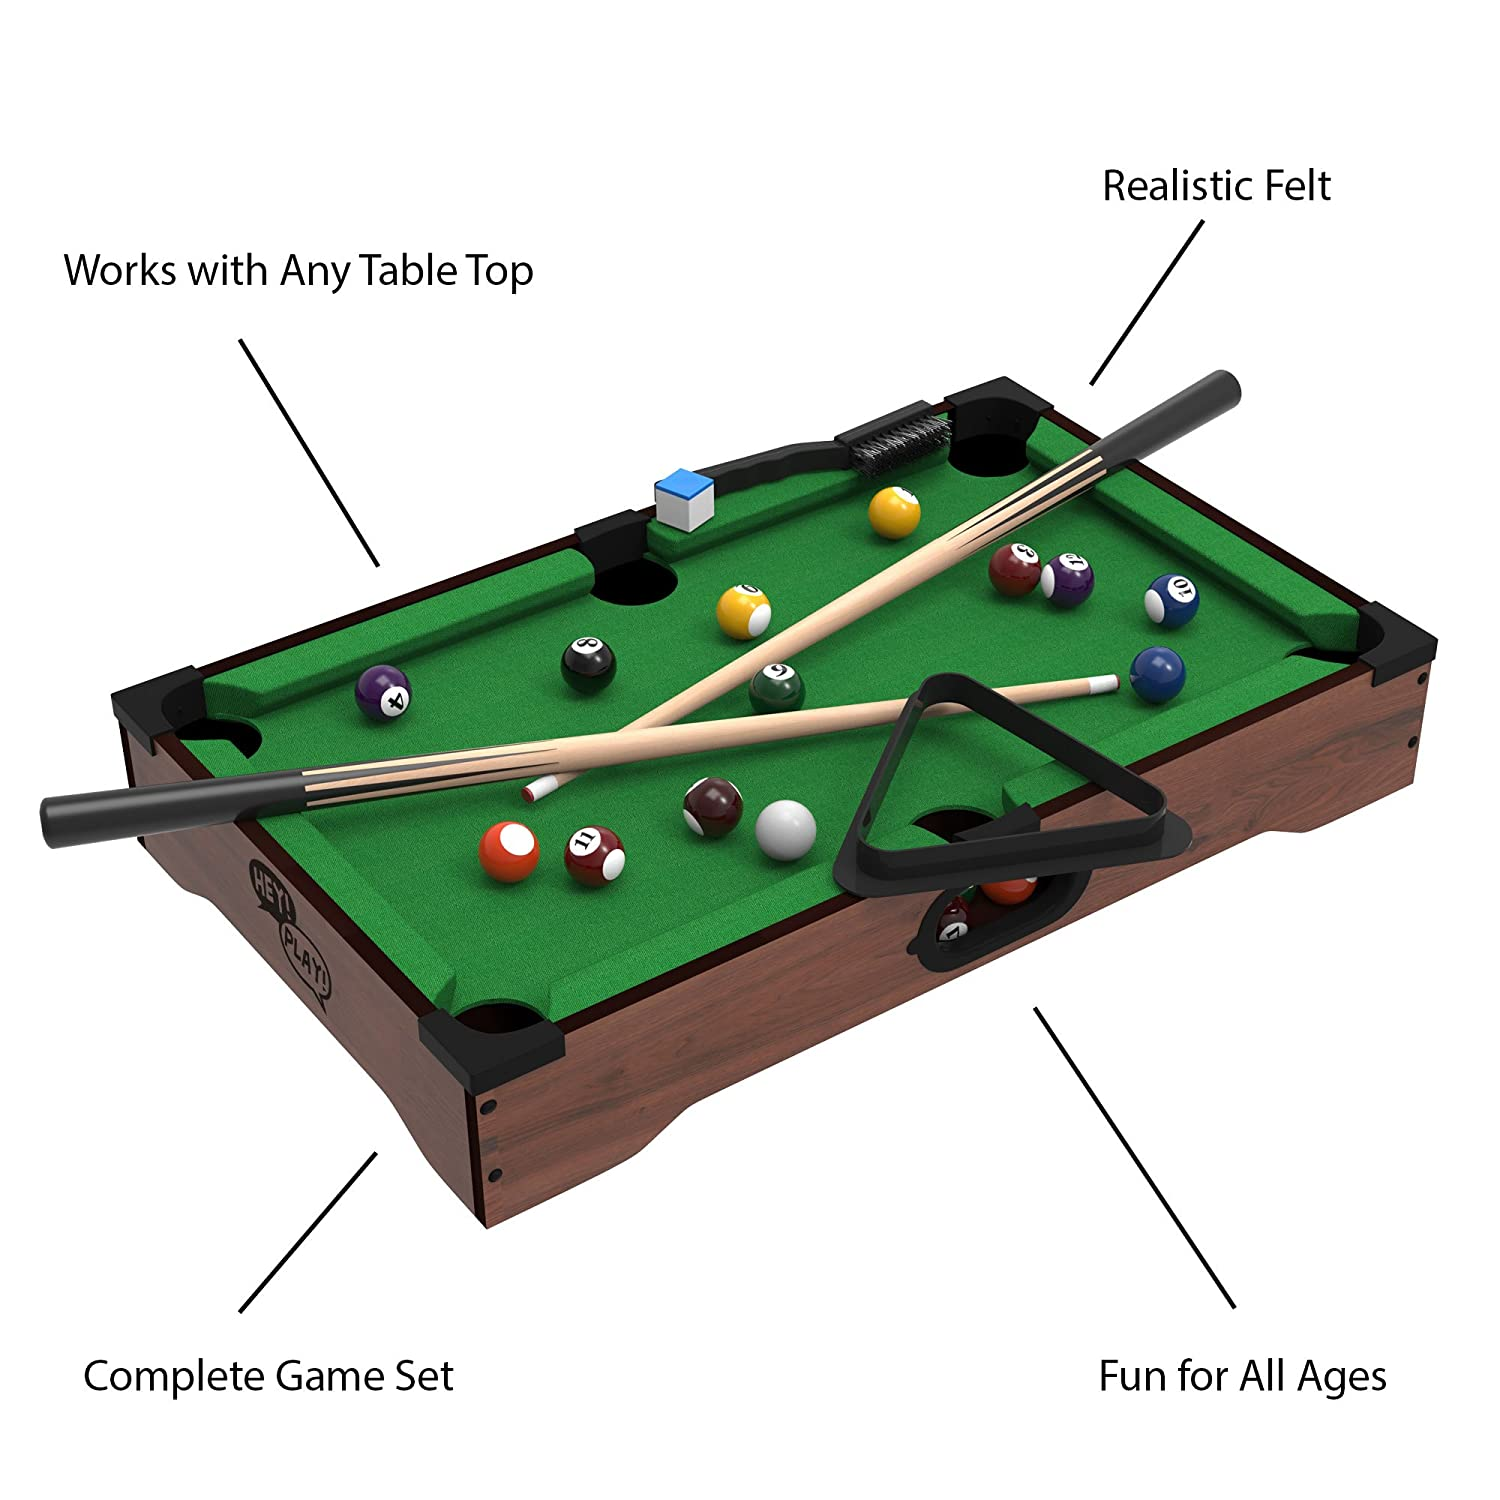 Genial Amazon.com: Trademark Mini Tabletop Pool Set  Billiards Game Includes Game  Balls, Sticks, Chalk, Brush And Triangle Portable And Fun For The Whole  Family By ...